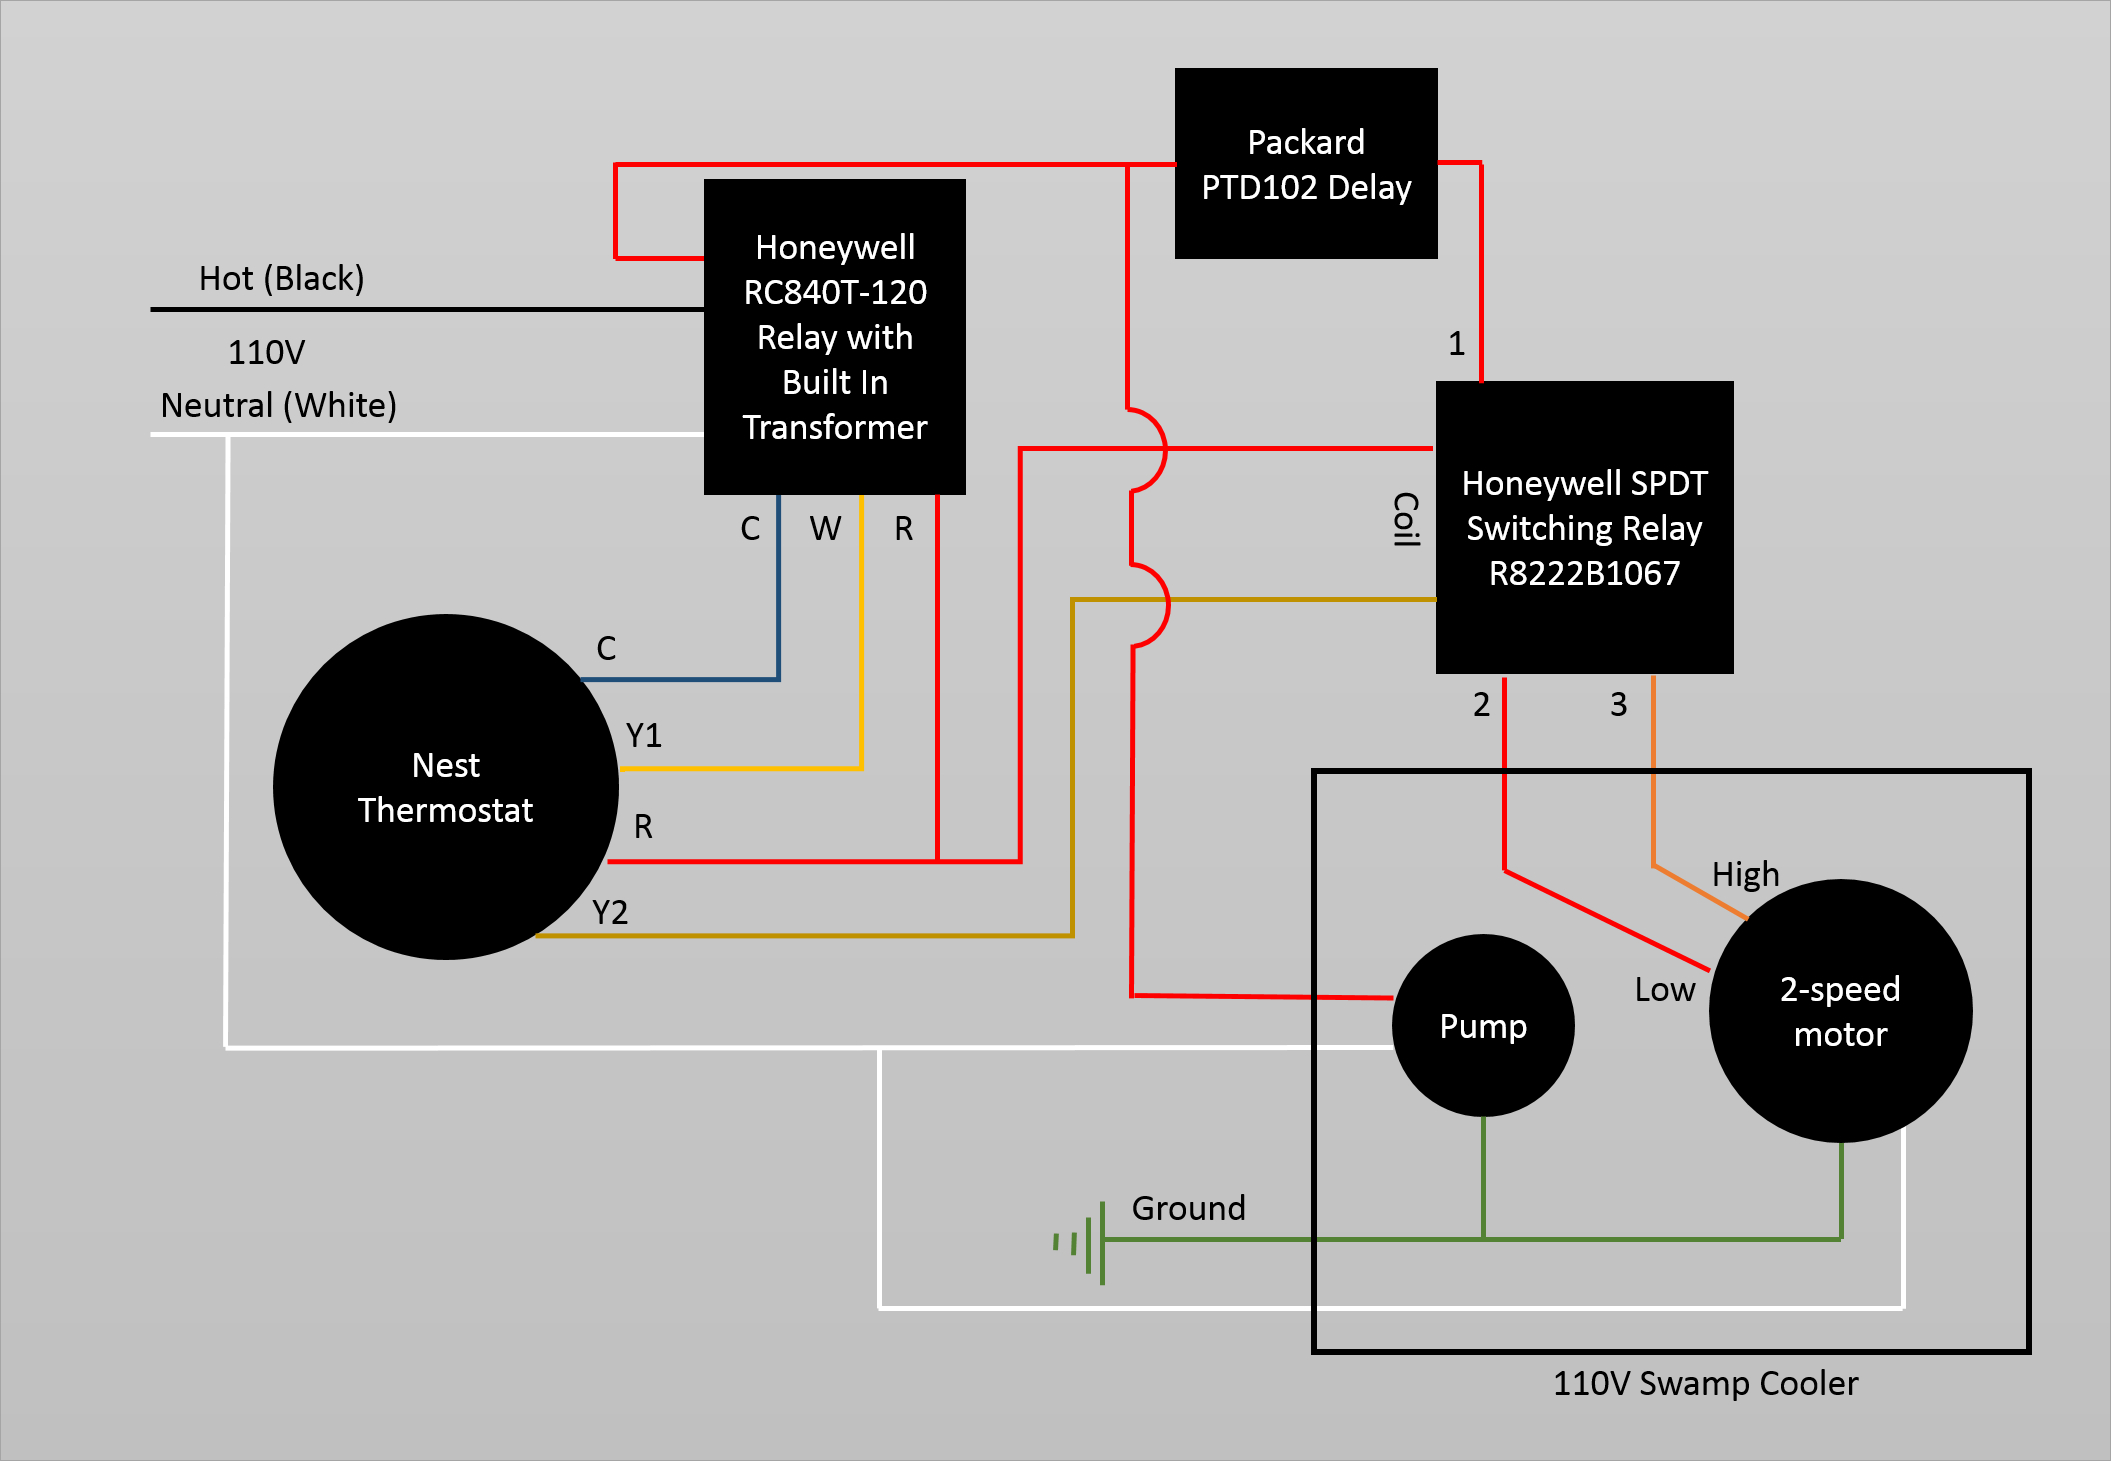 Wiring - Controlling 110V Swamp Cooler Using Nest Thermostat - Home - Nest Thermostat Wiring Diagram For 2 Stage Cooling 2 Stages Heat